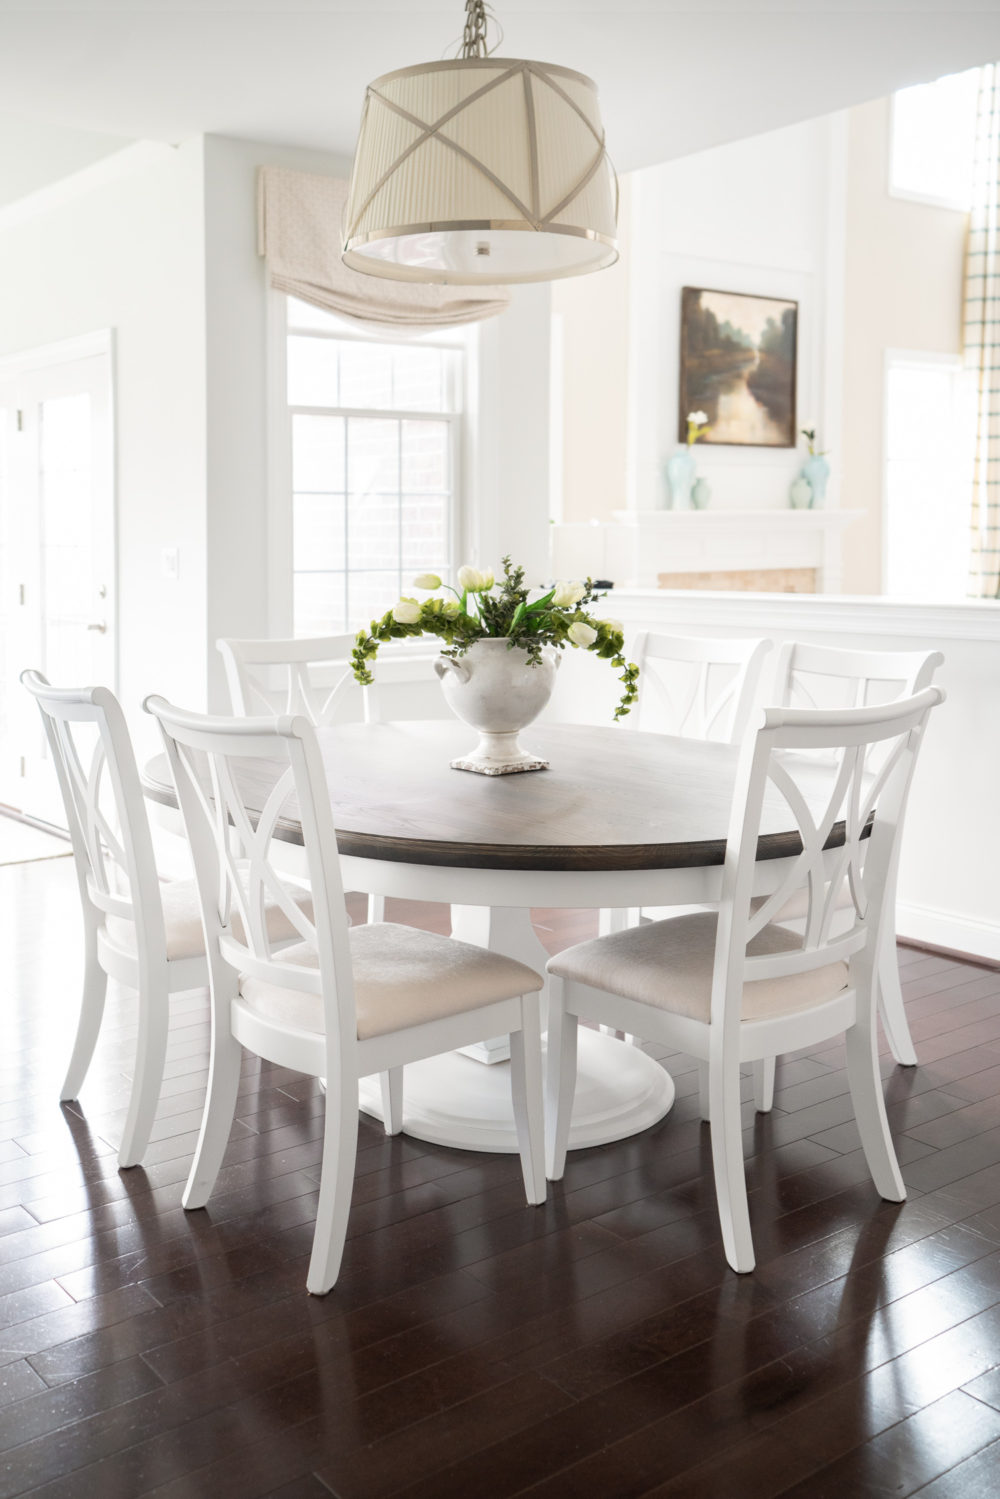 Petite Fashion Blog |White Kitchen | Inset Cabinets | From Overlay to Inset |Rustic Elements Furniture